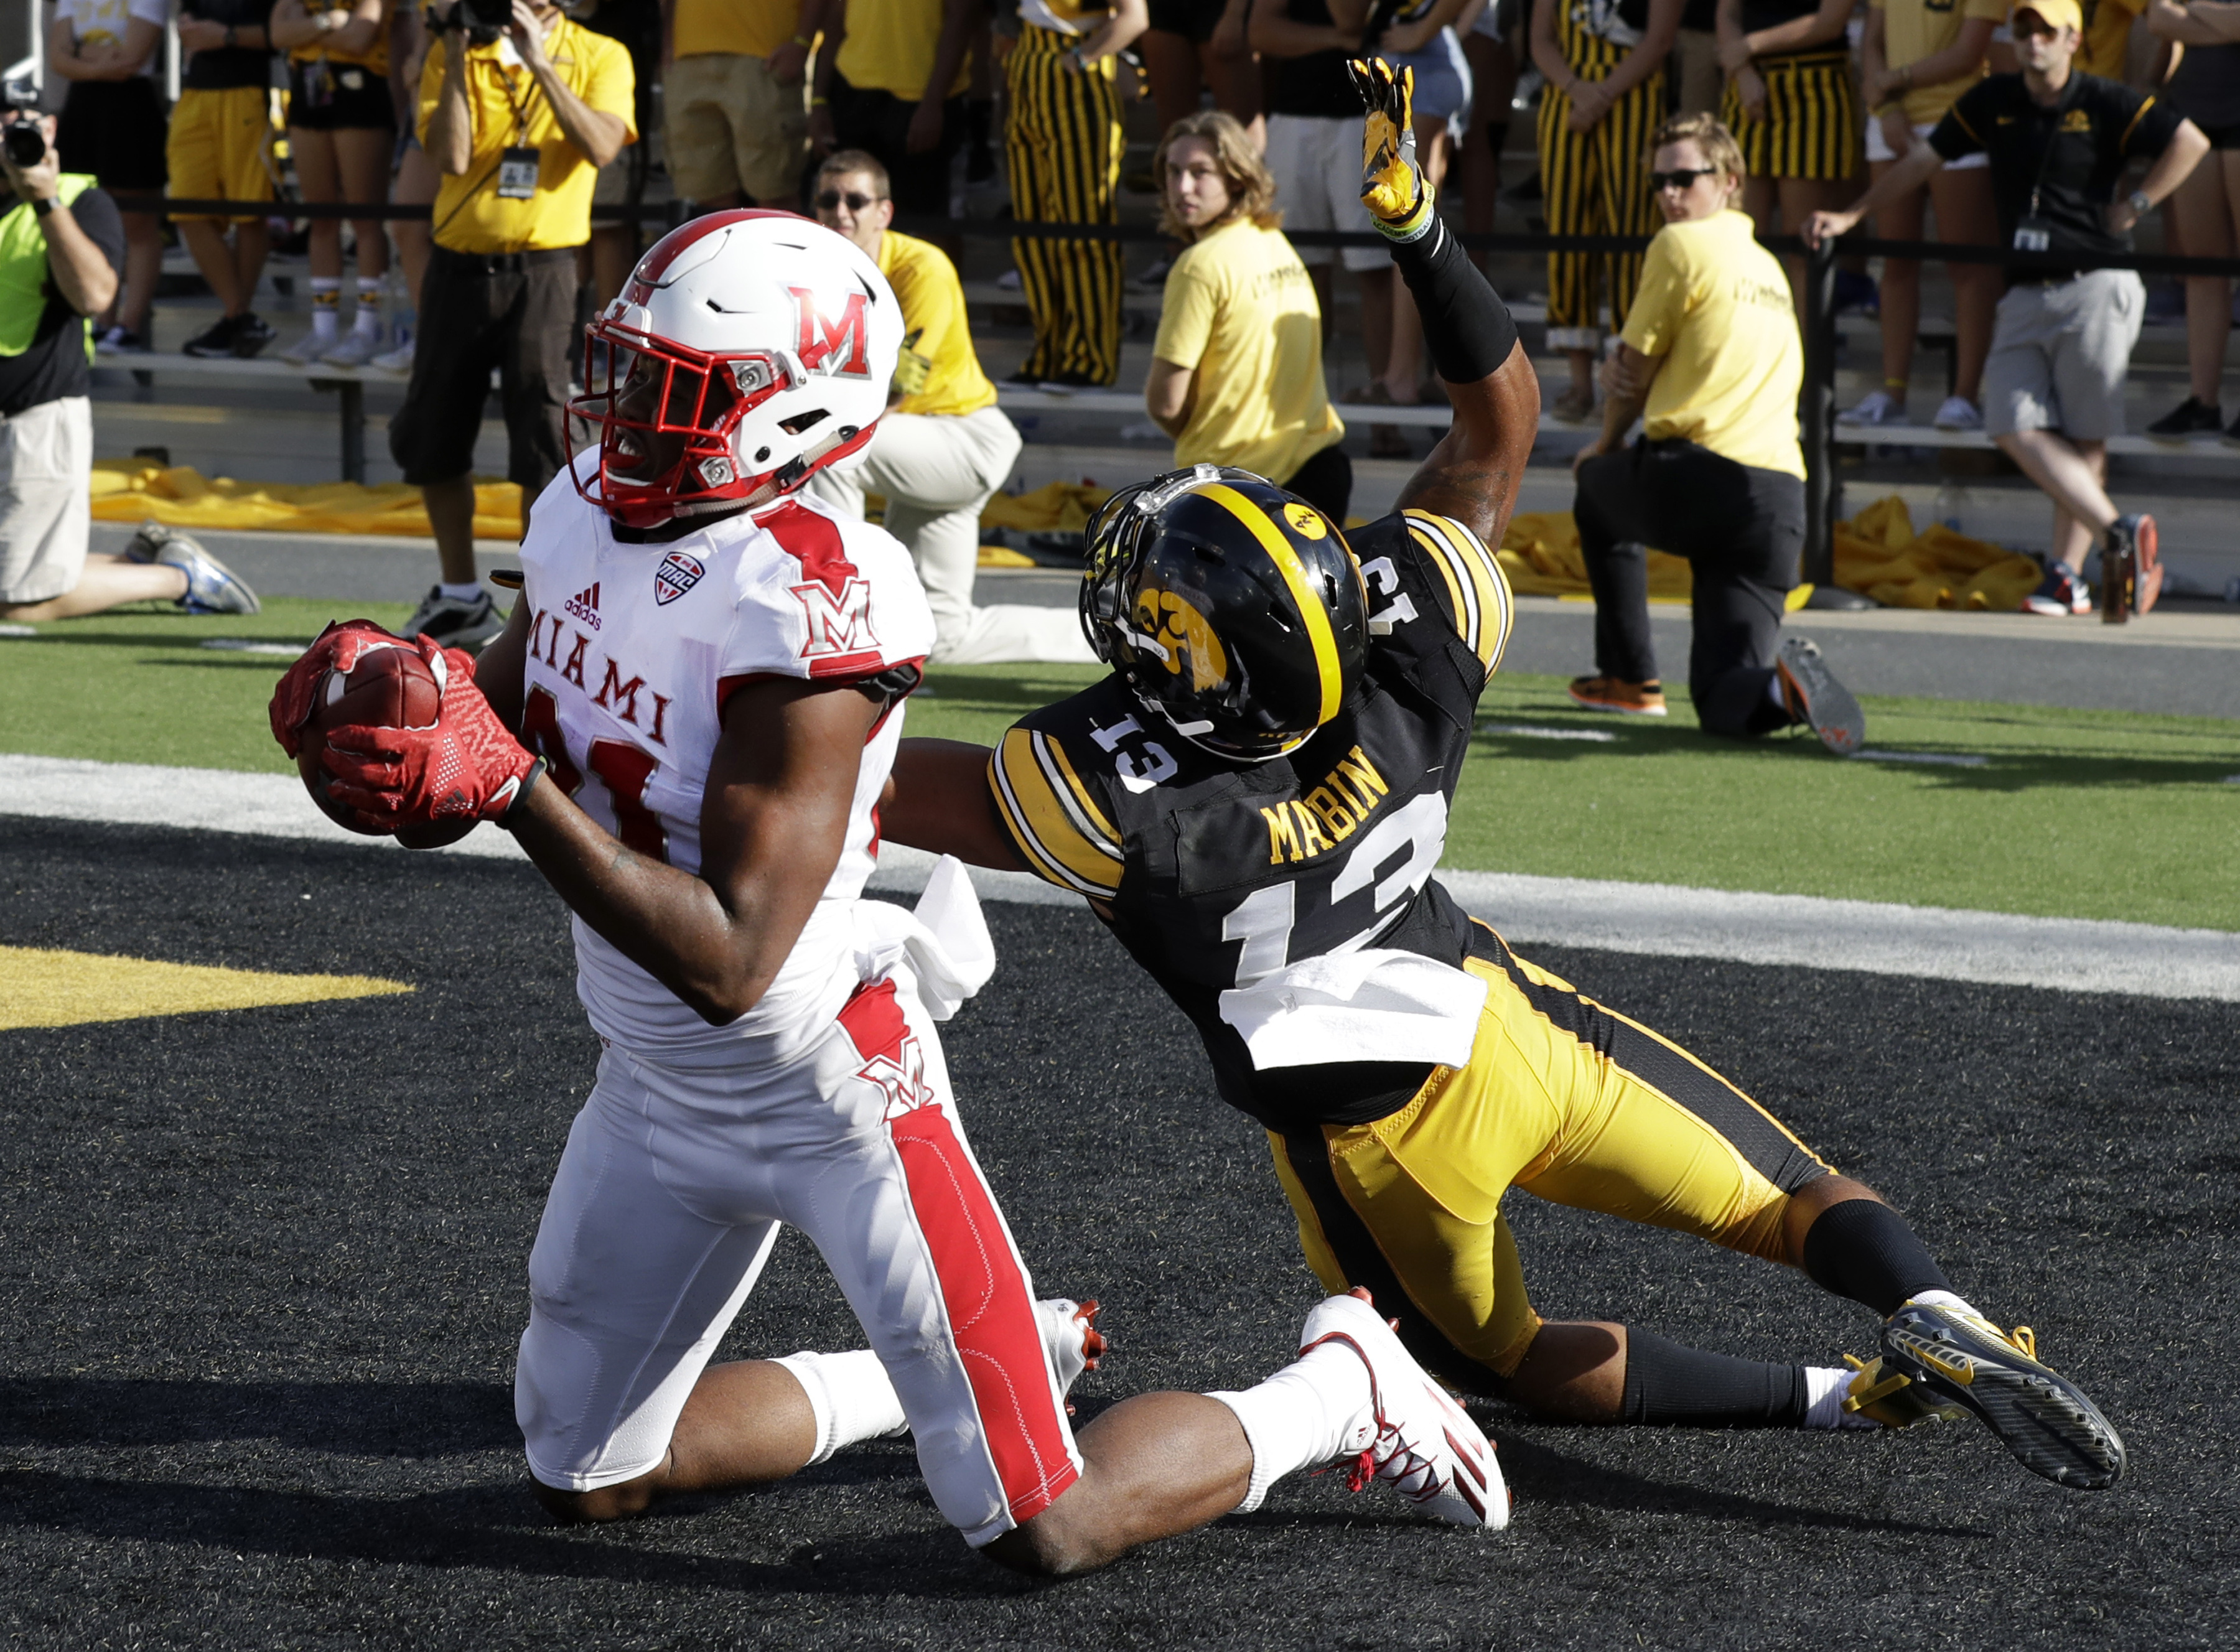 FILE - In this Saturday, Sept. 3, 2016, file photo, Miami of Ohio wide receiver James Gardner catches a touchdown pass as Iowa defensive back Greg Mabin tried to defend during the second half of an NCAA college football game in Iowa City, Iowa. So much fo